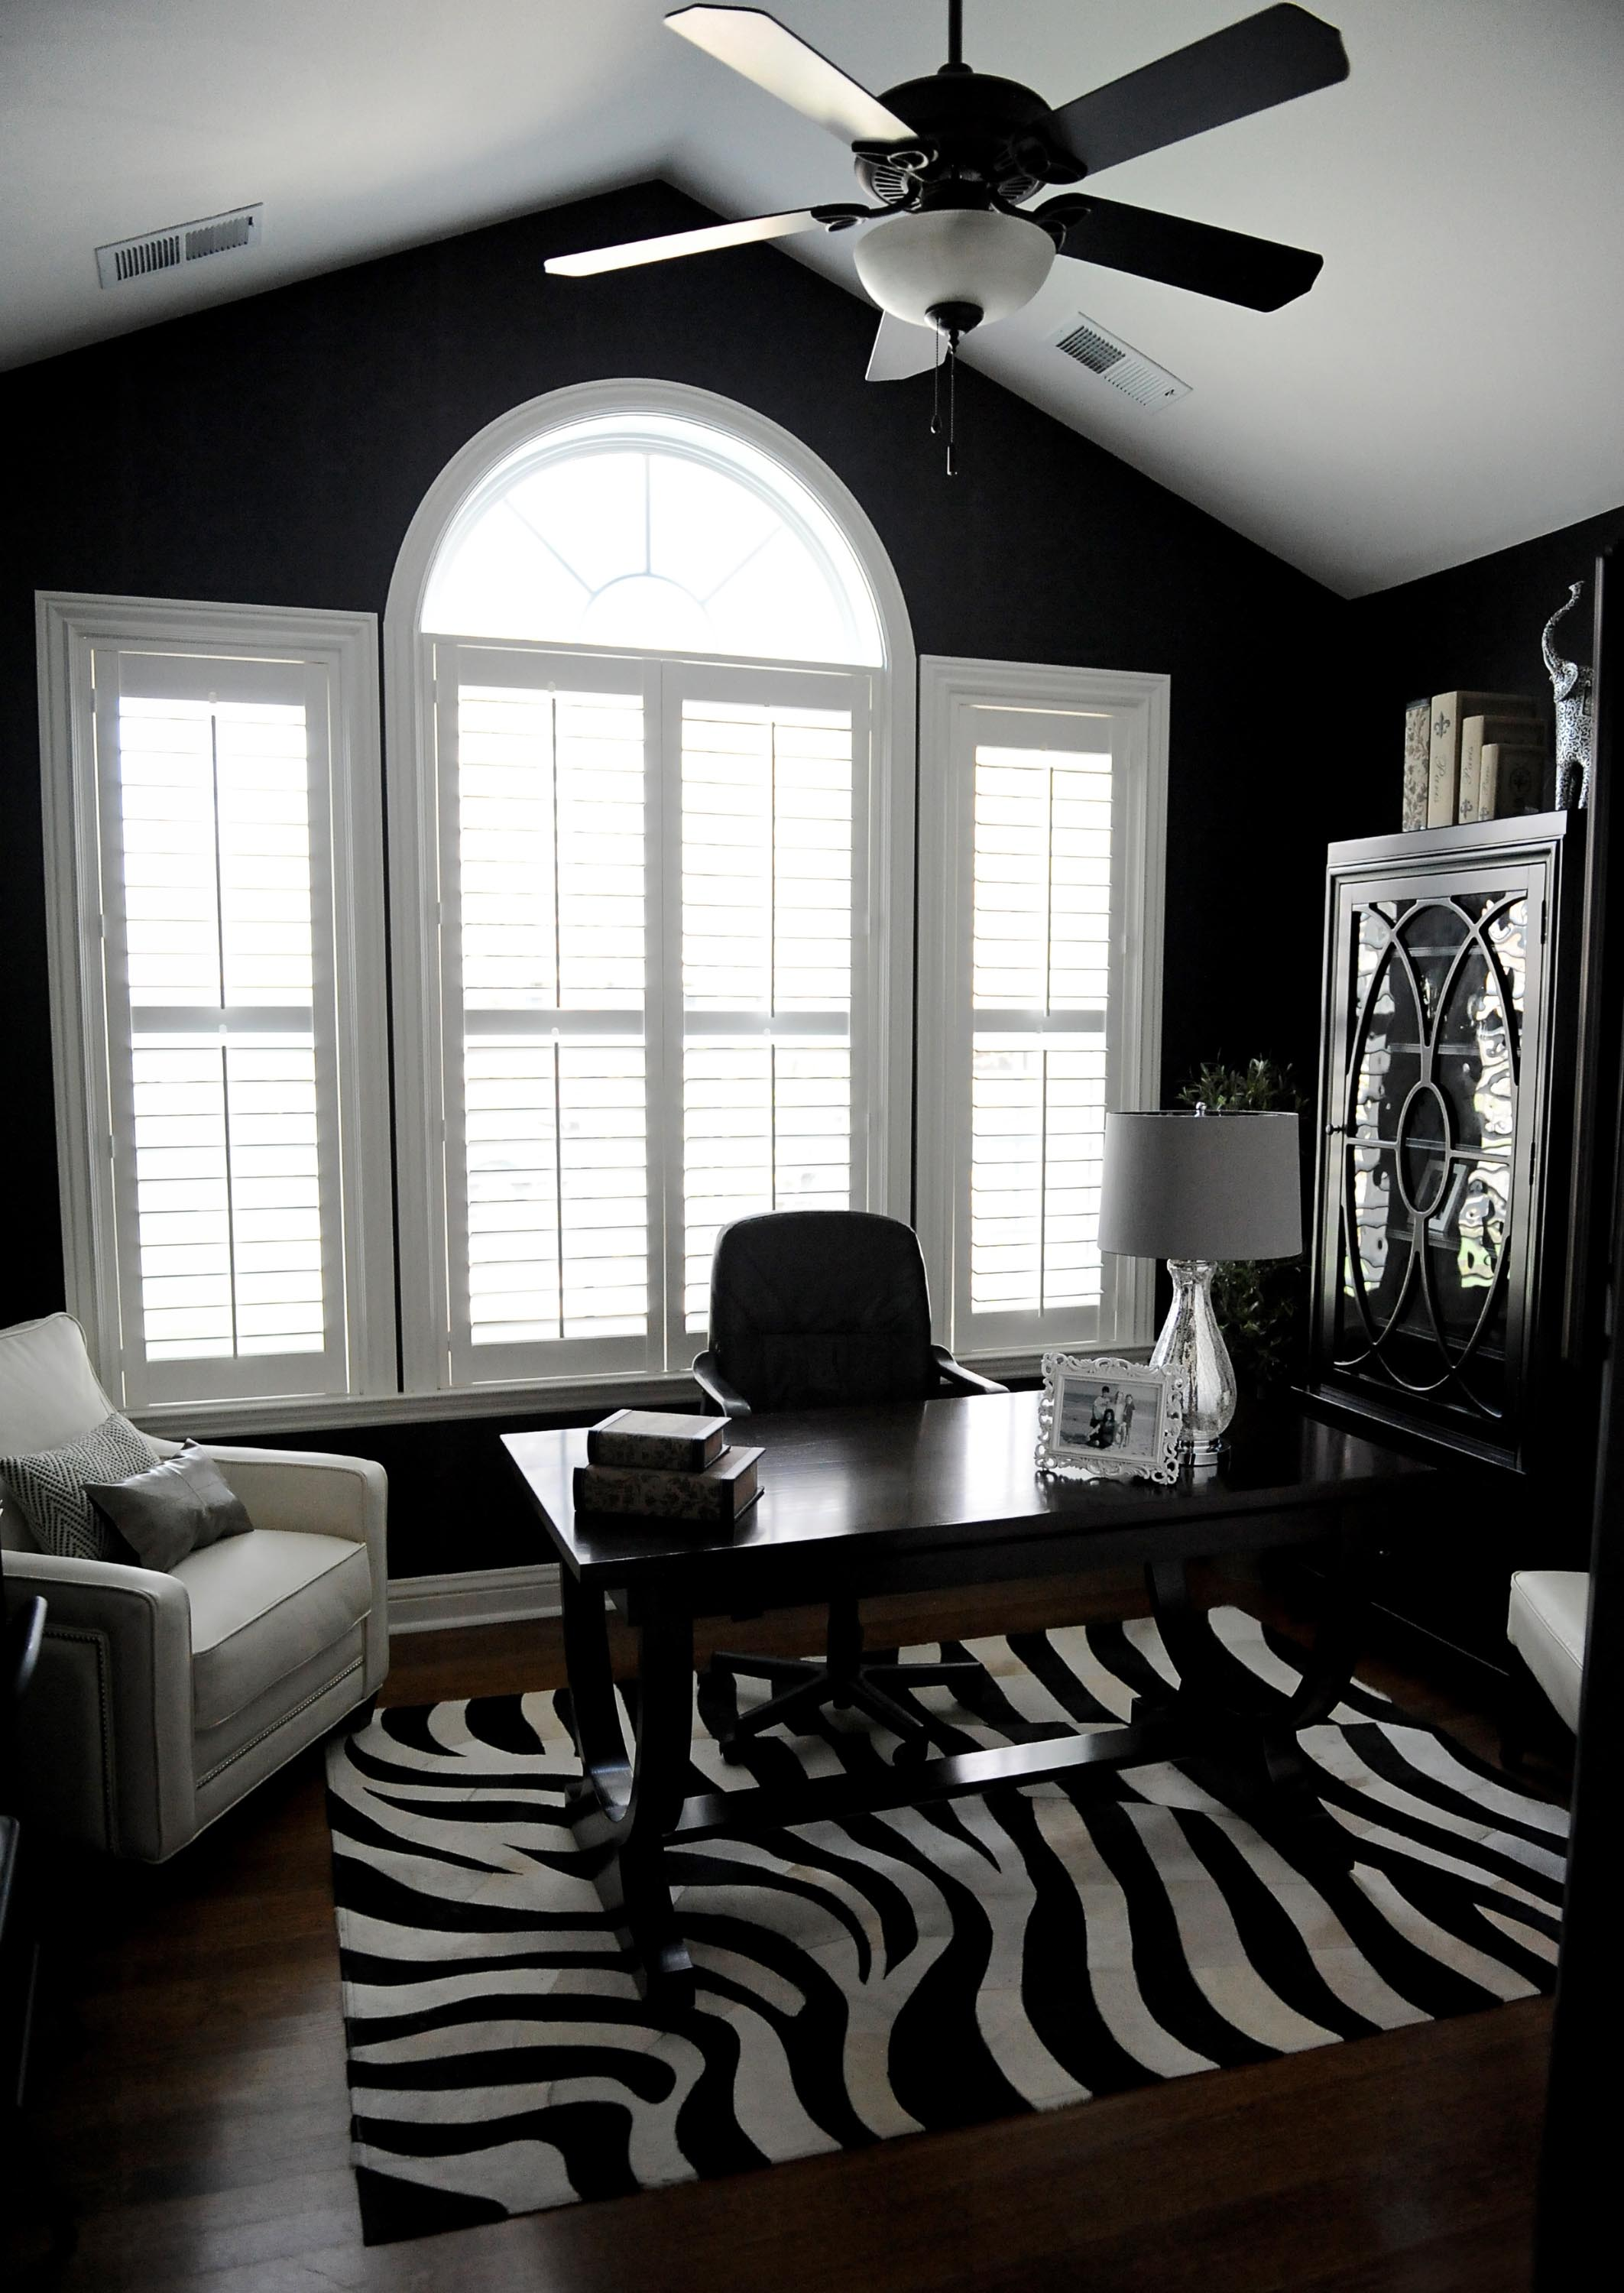 Home office with table and chair and a window